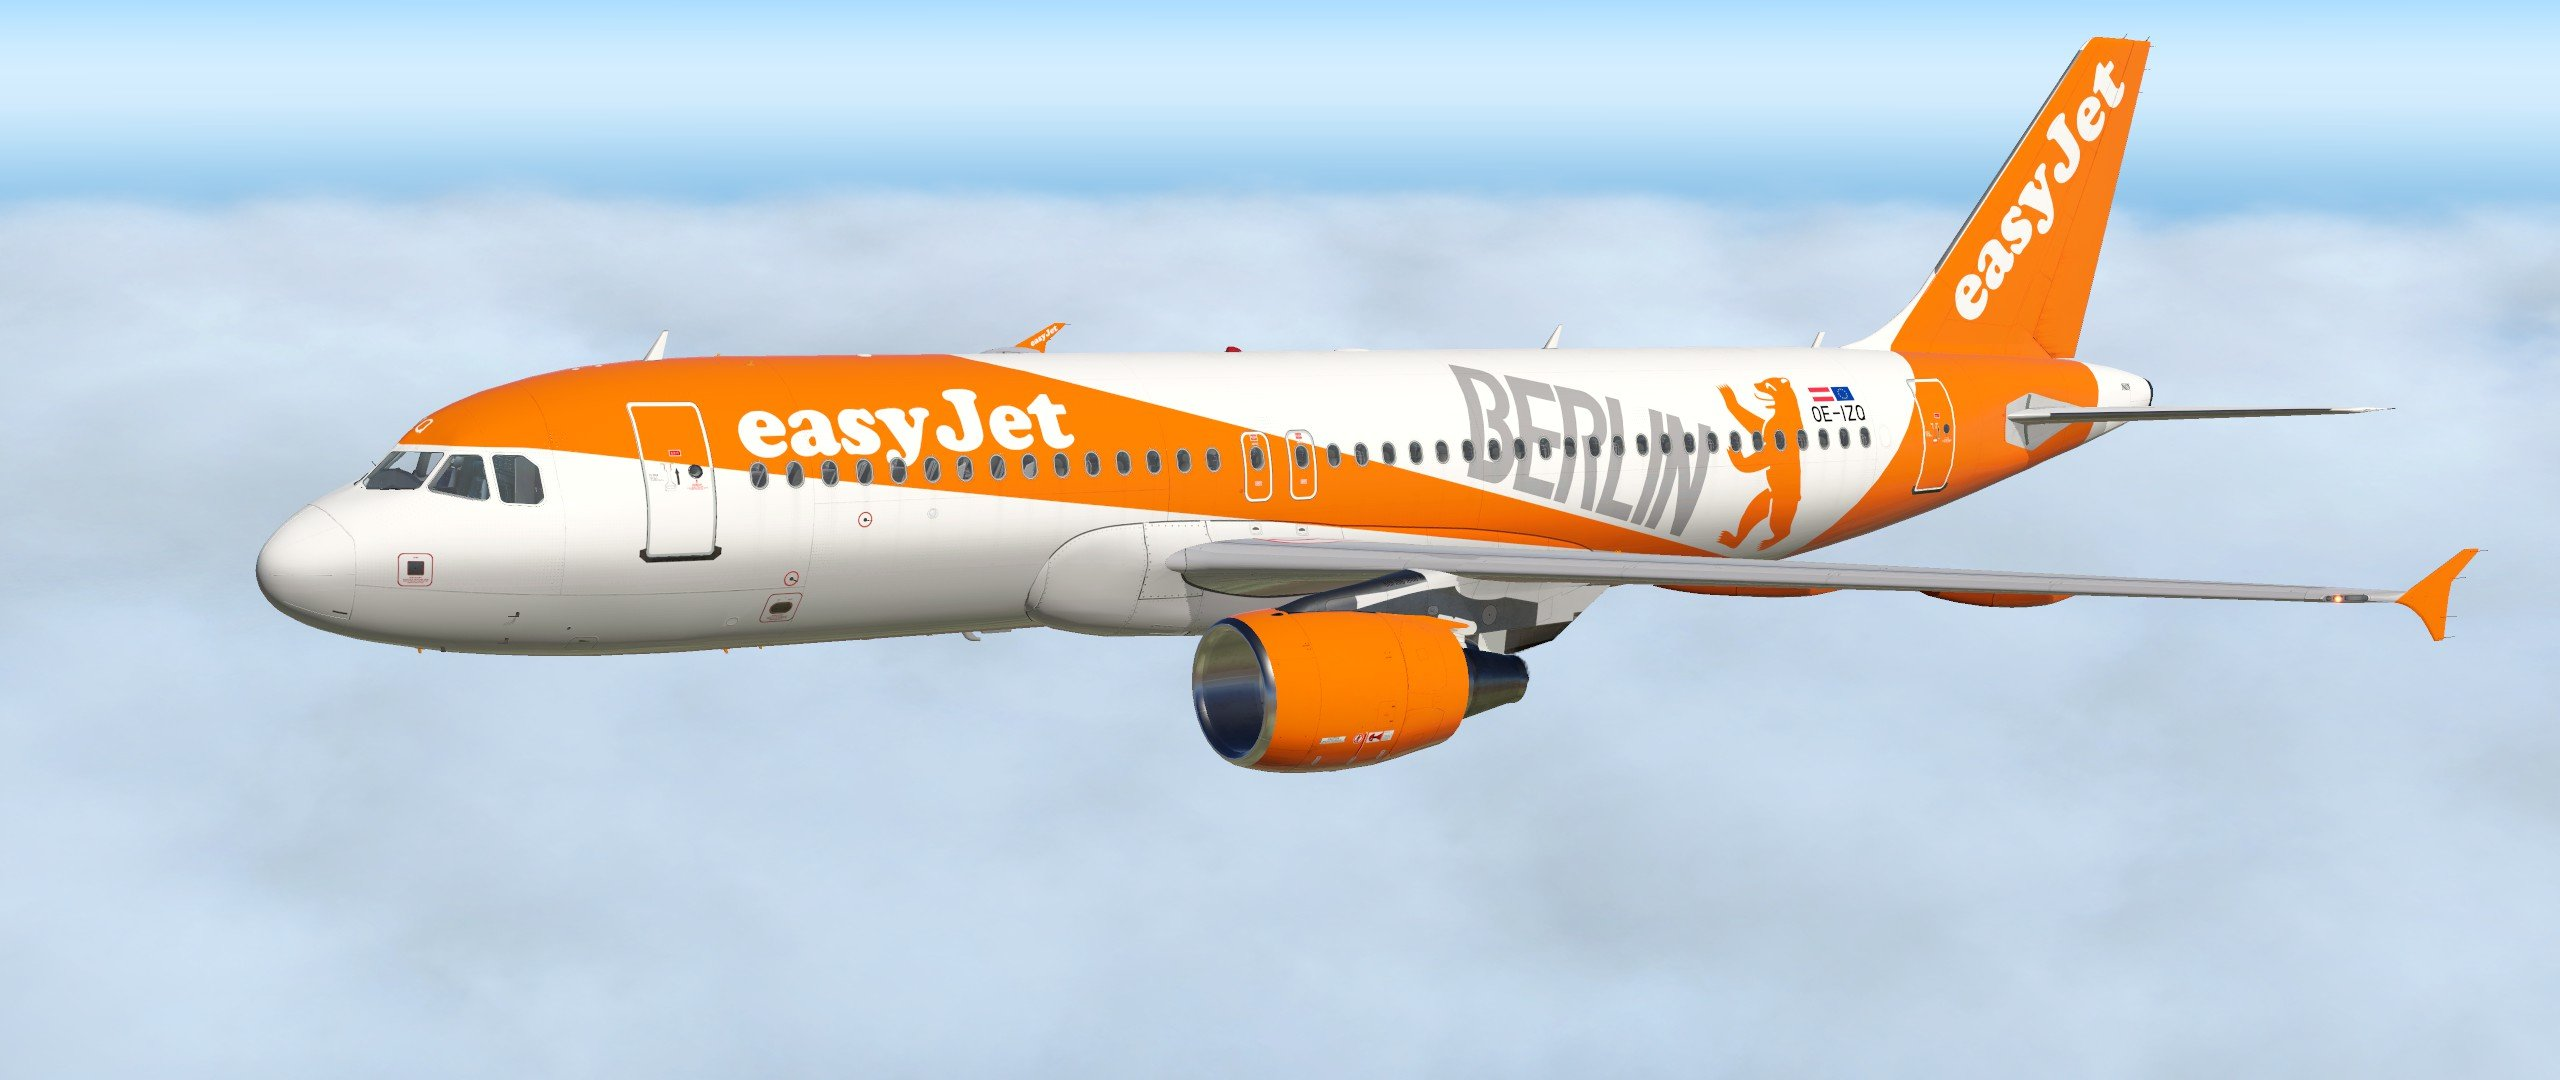 FF A320 – Easyjet Europe - Berlin livery - Liveries - Threshold